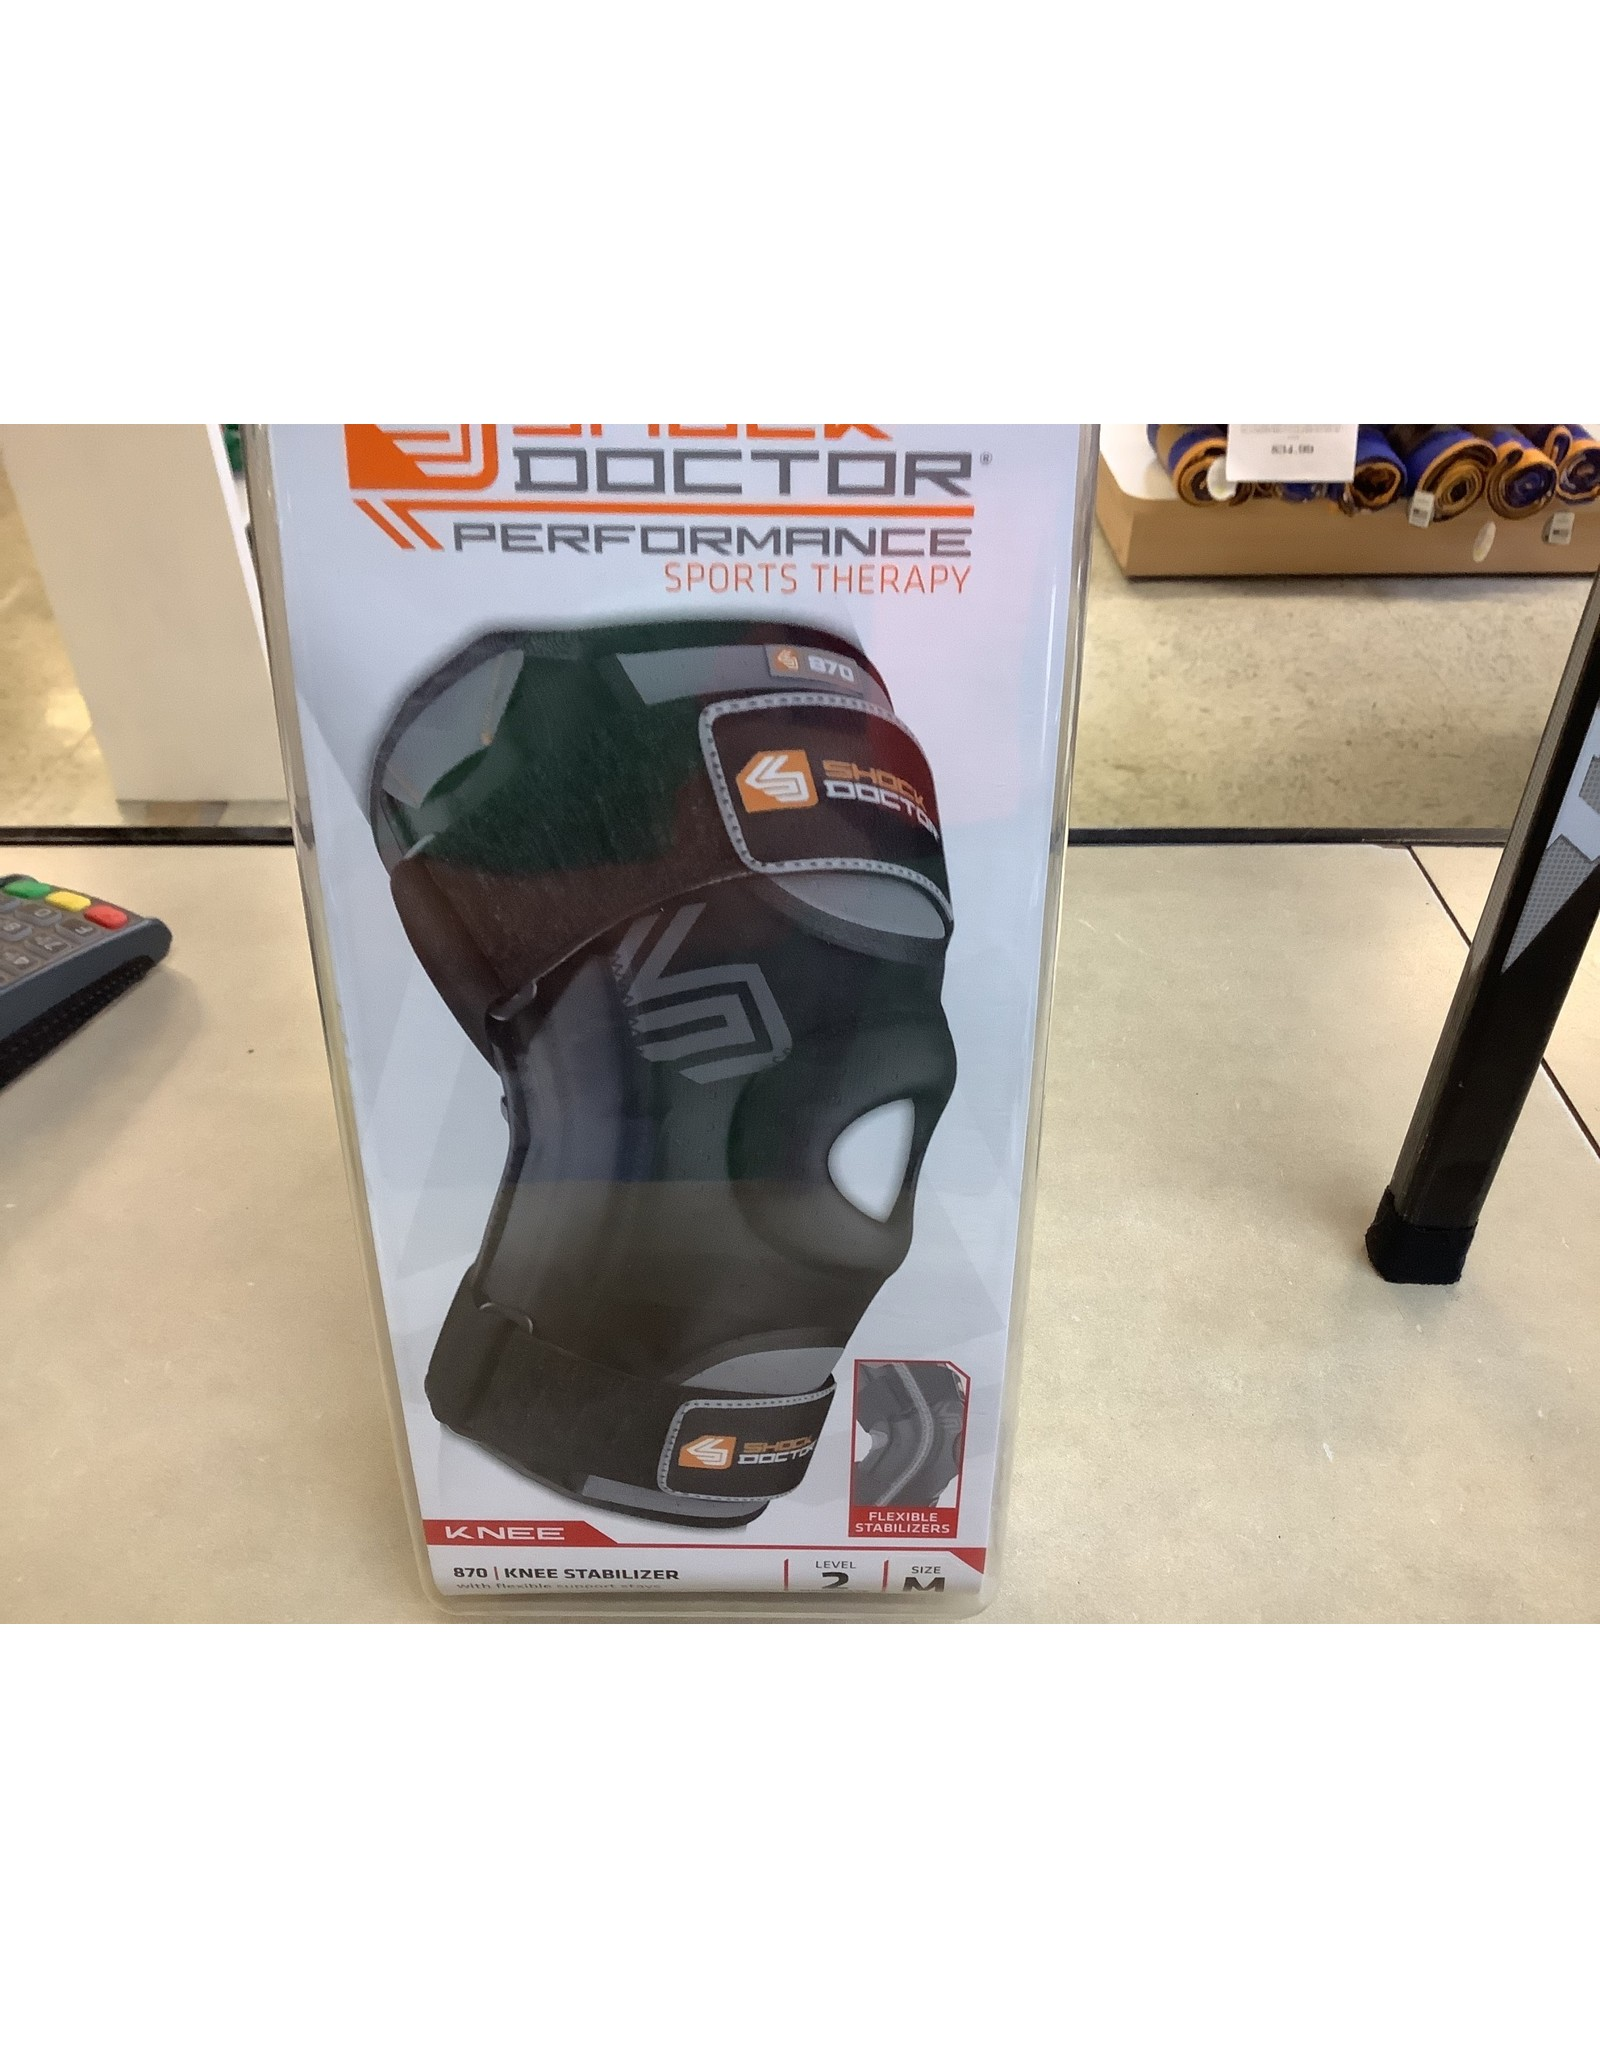 Shock Doctor 870 Knee Stabilizer